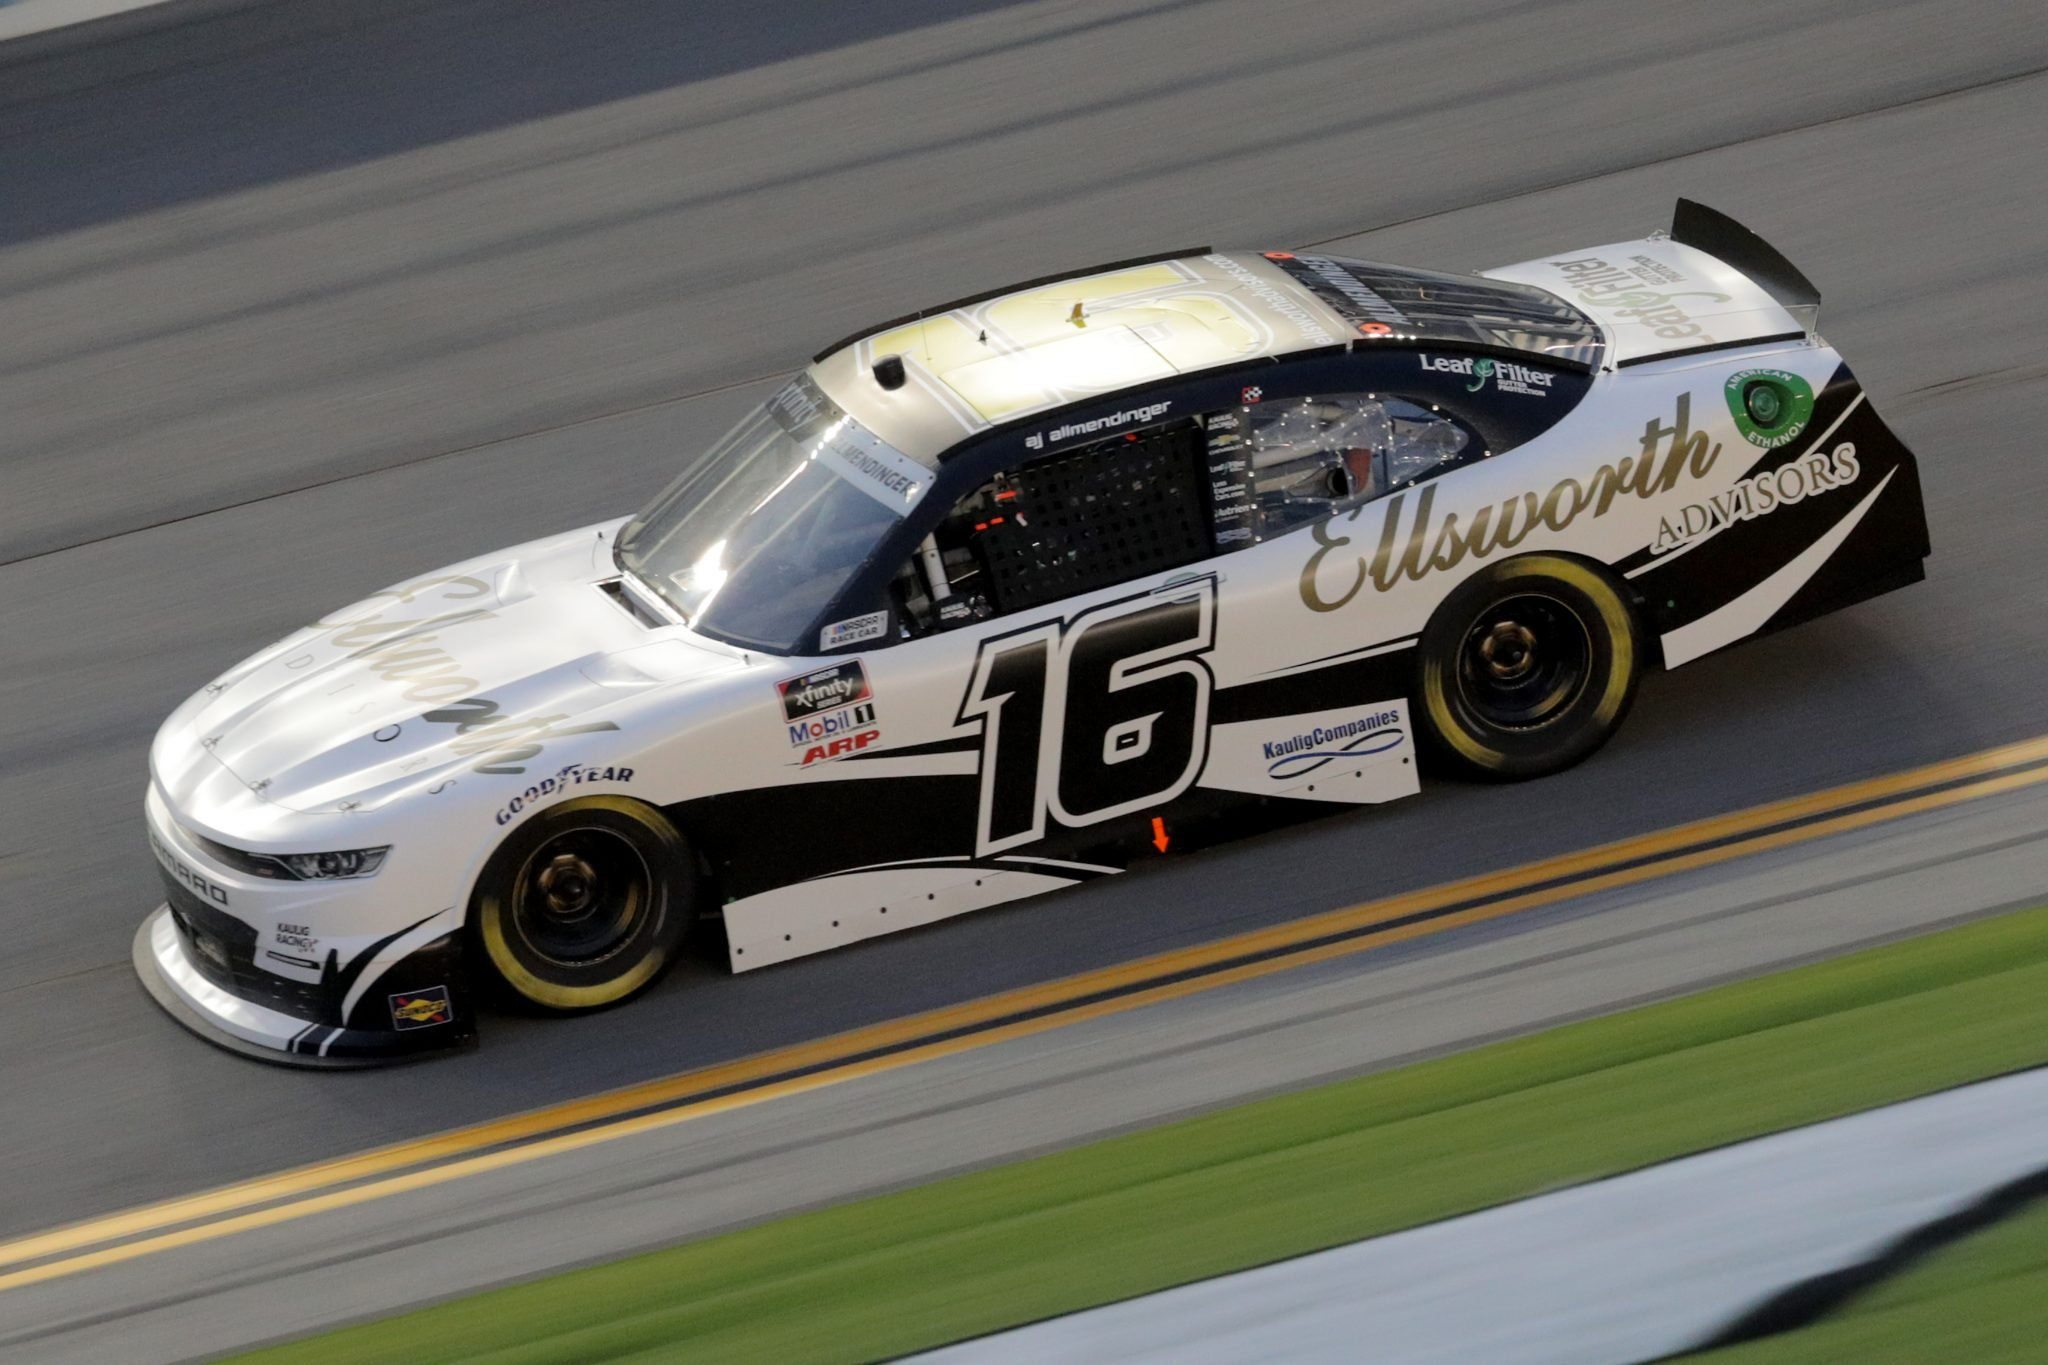 DAYTONA BEACH, FLORIDA - AUGUST 28: AJ Allmendinger, driver of the #16 Chevrolet, drives during the NASCAR Xfinity Series Wawa 250 Powered by Coca-Cola at Daytona International Speedway on August 28, 2020 in Daytona Beach, Florida. (Photo by Chris Graythen/Getty Images) | Getty Images